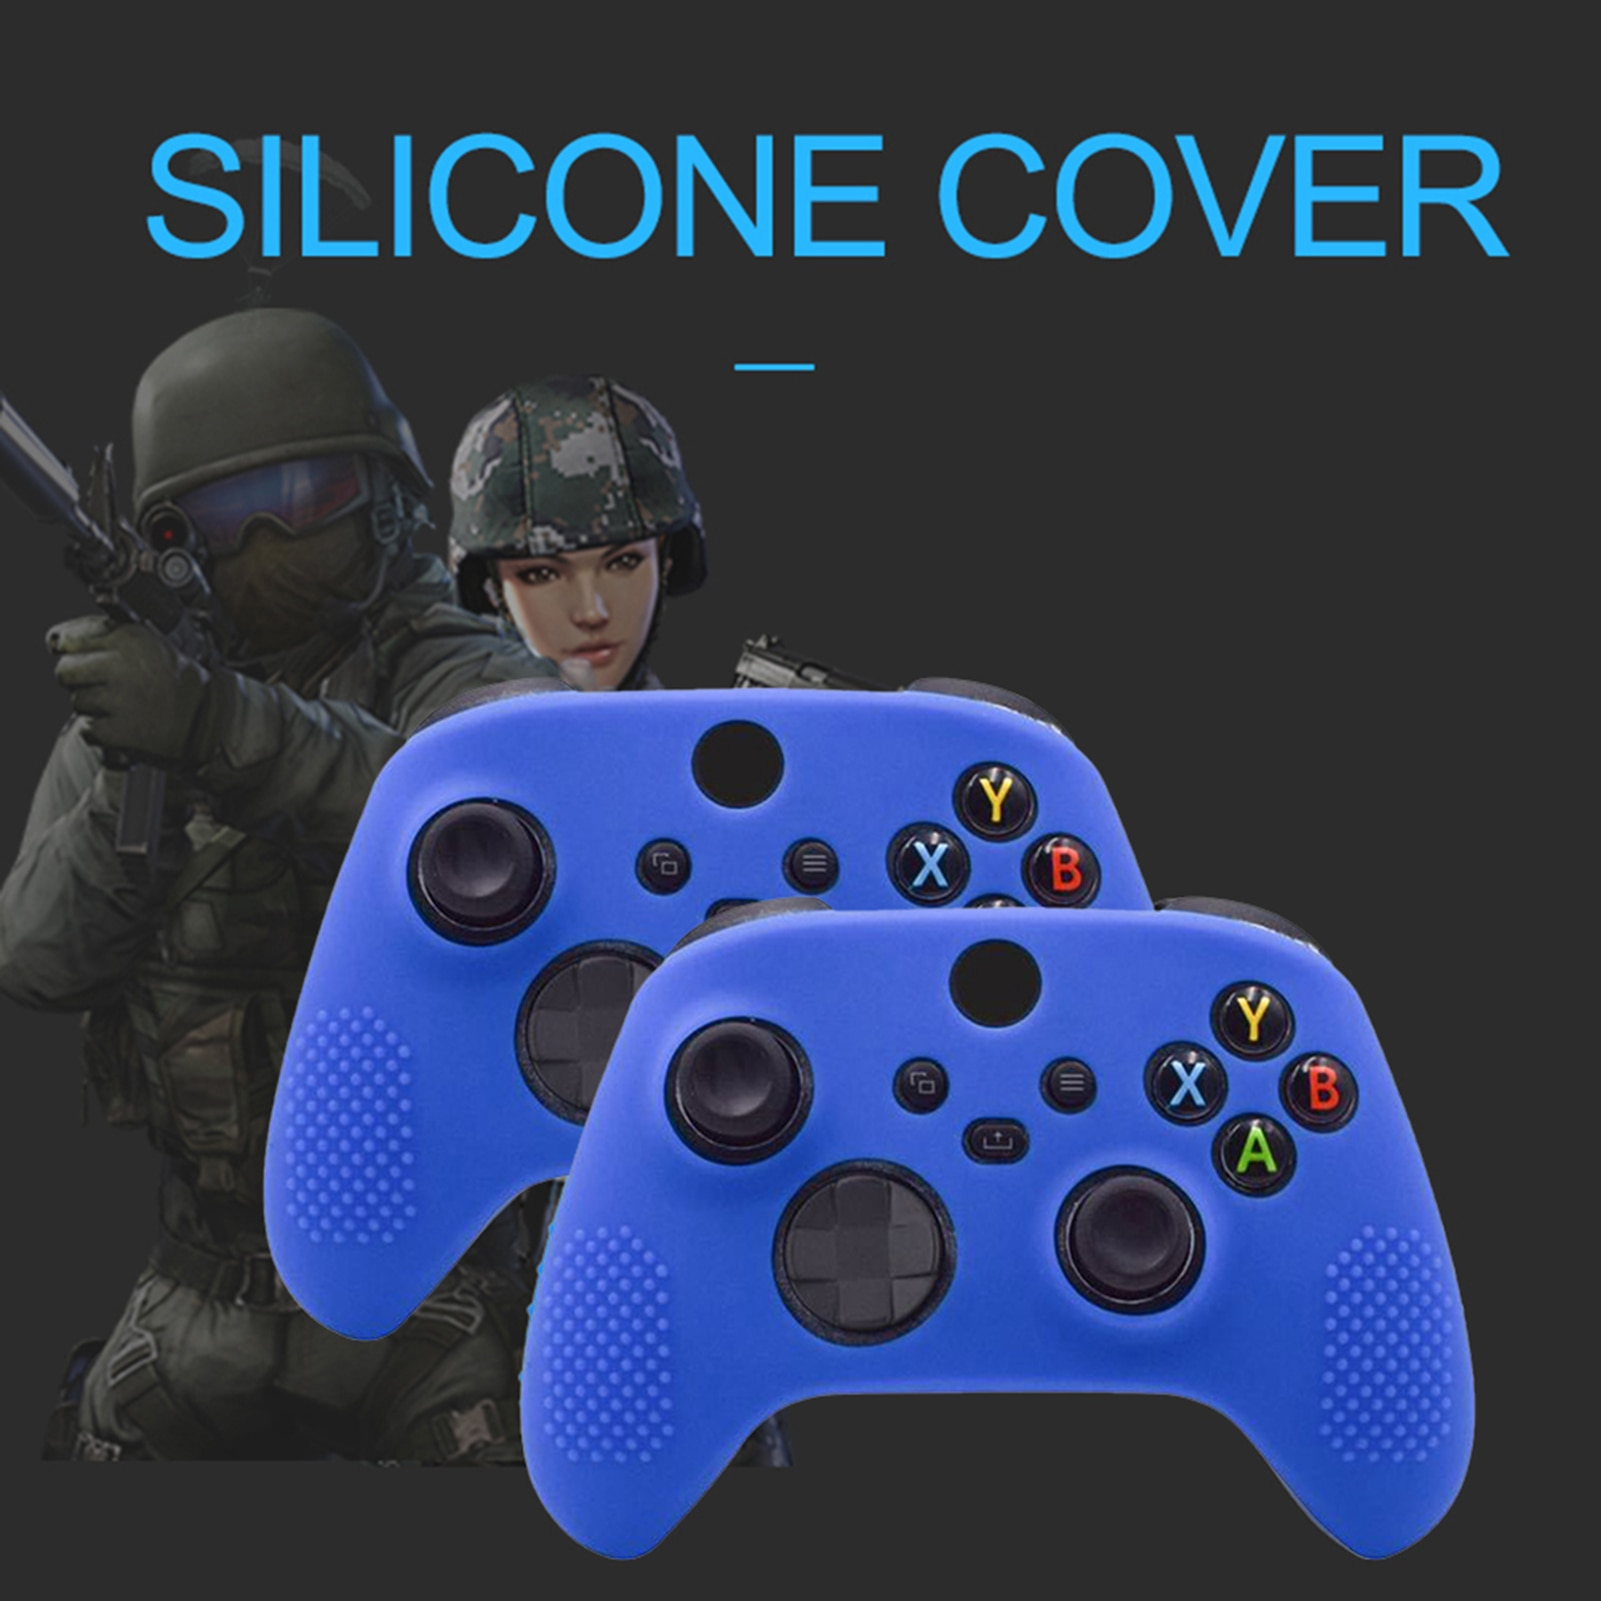 Studded Anti-Slip Silicone Cover Skin Set For Xbox One S/Xbox One X Controller Game Console Accessories